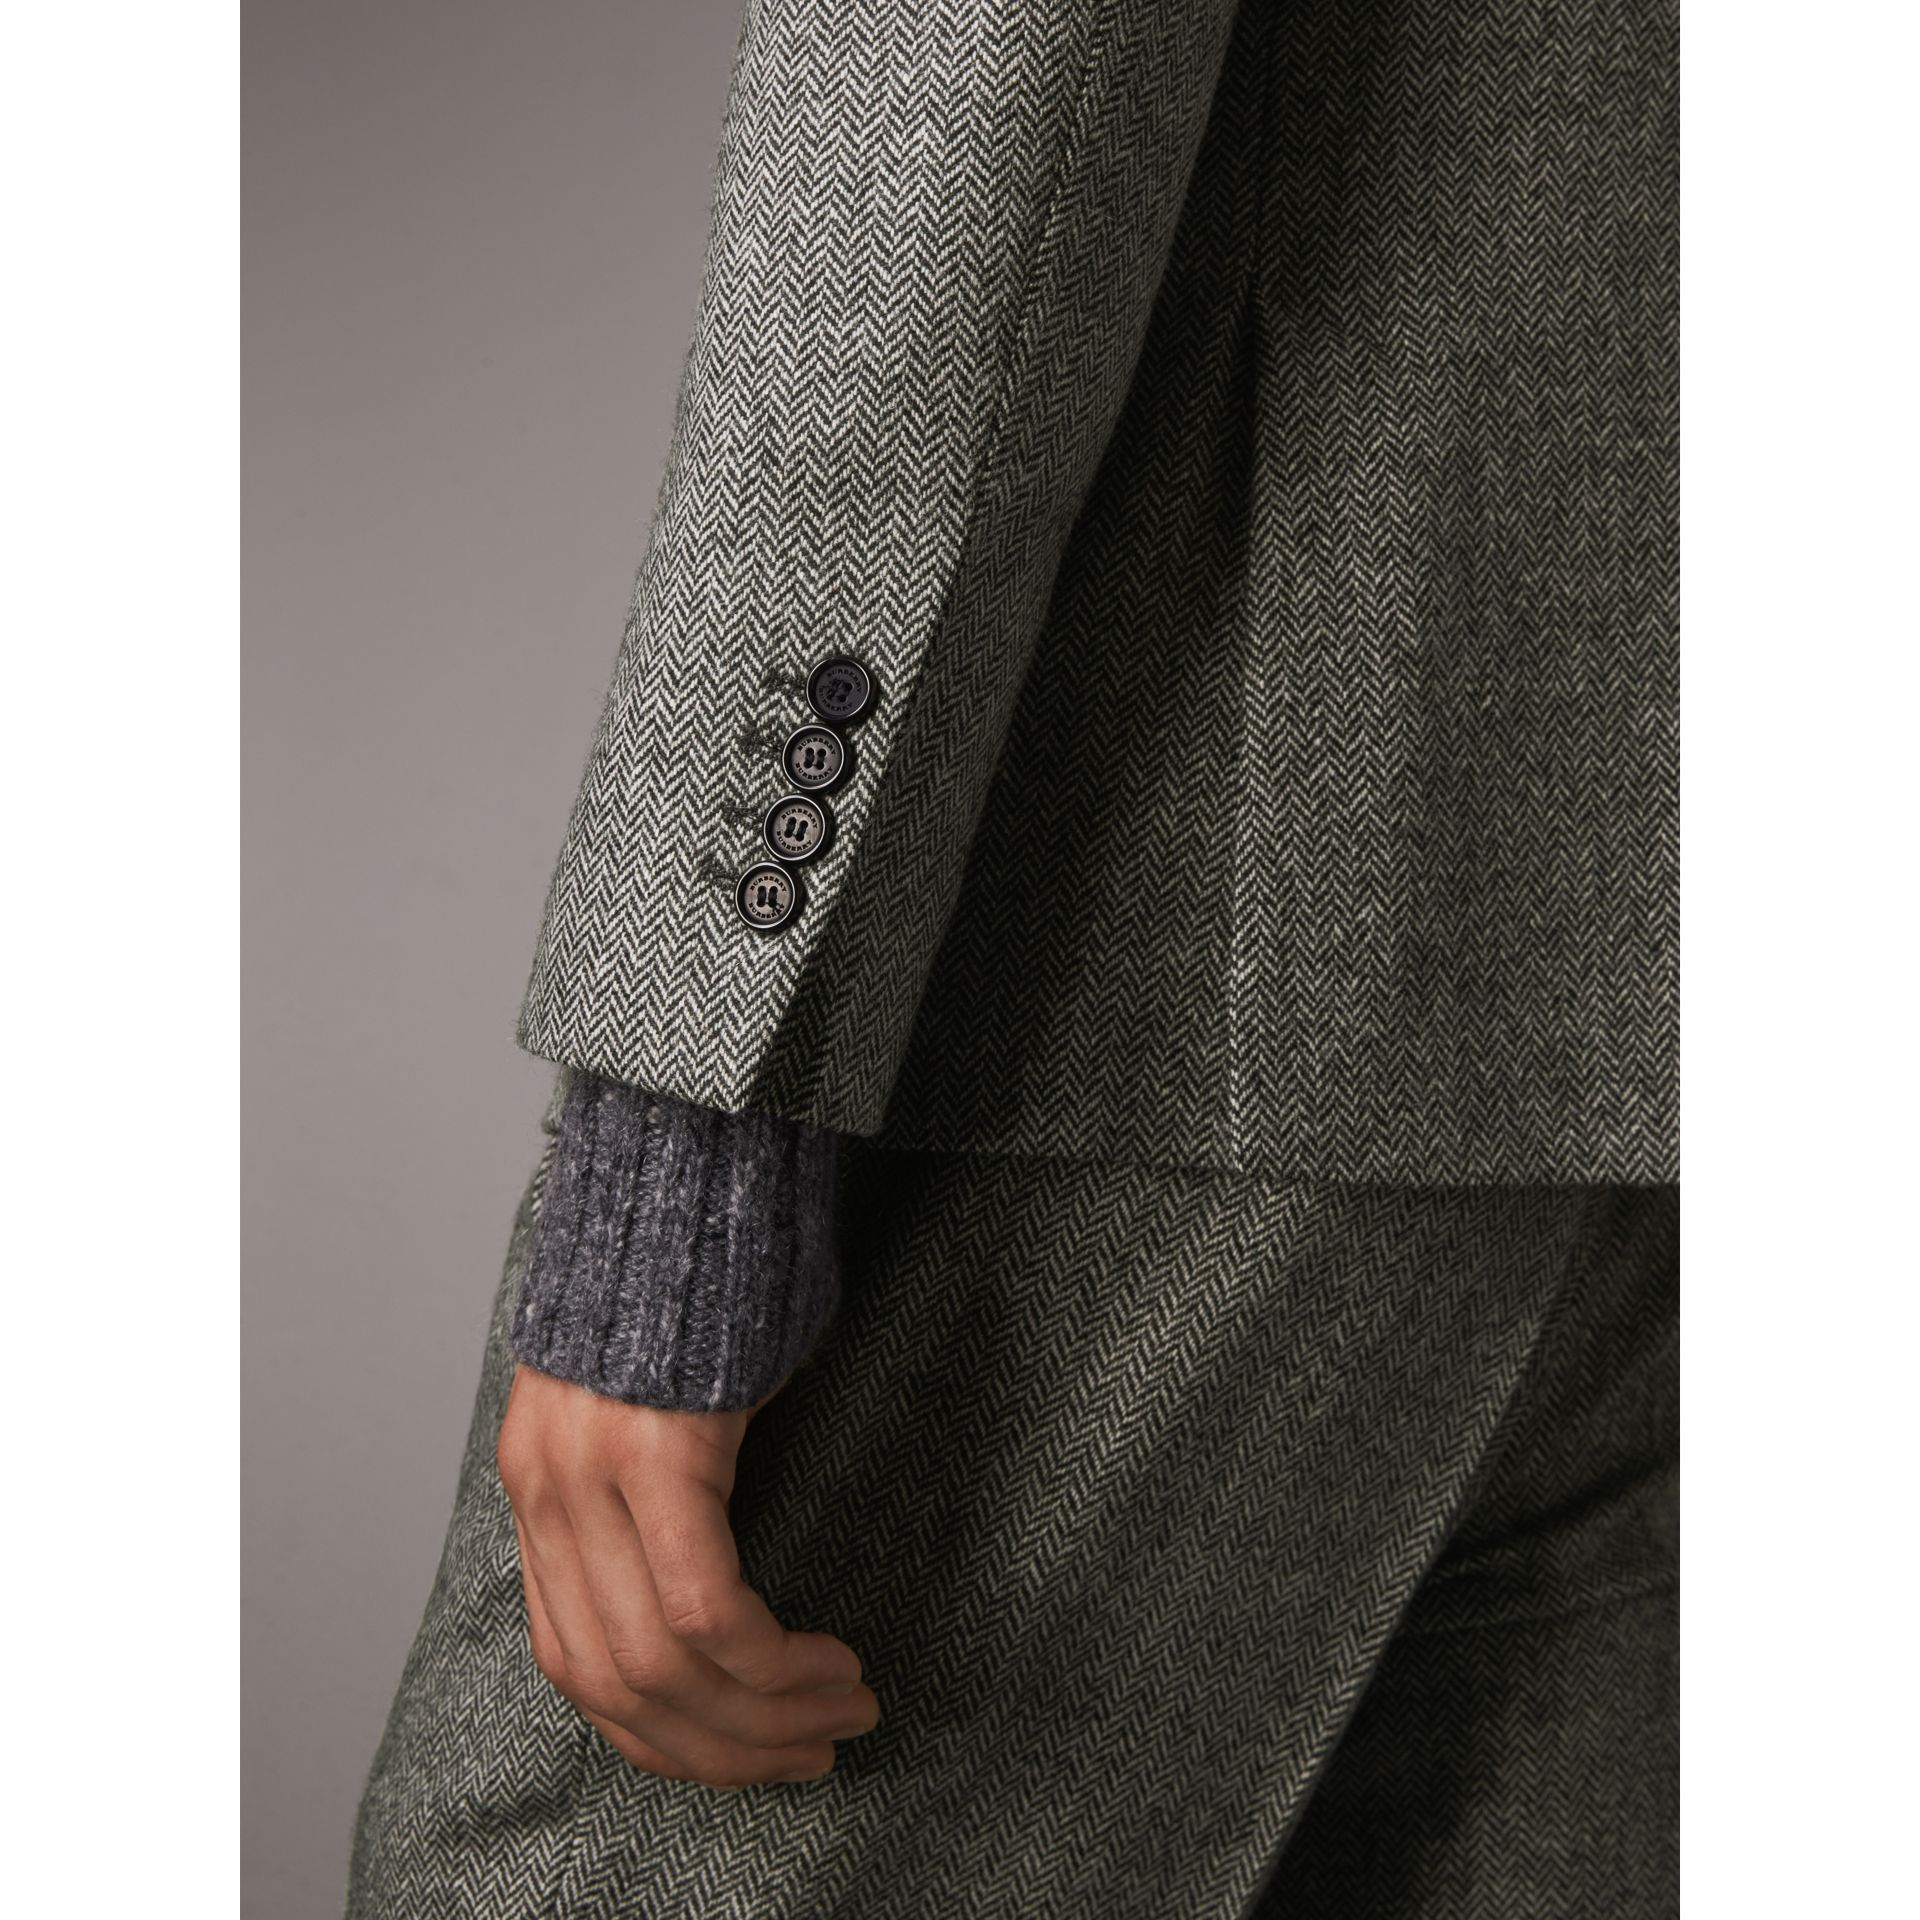 Soho Fit Herringbone Wool Tailored Jacket in Black / White - Men | Burberry - gallery image 5